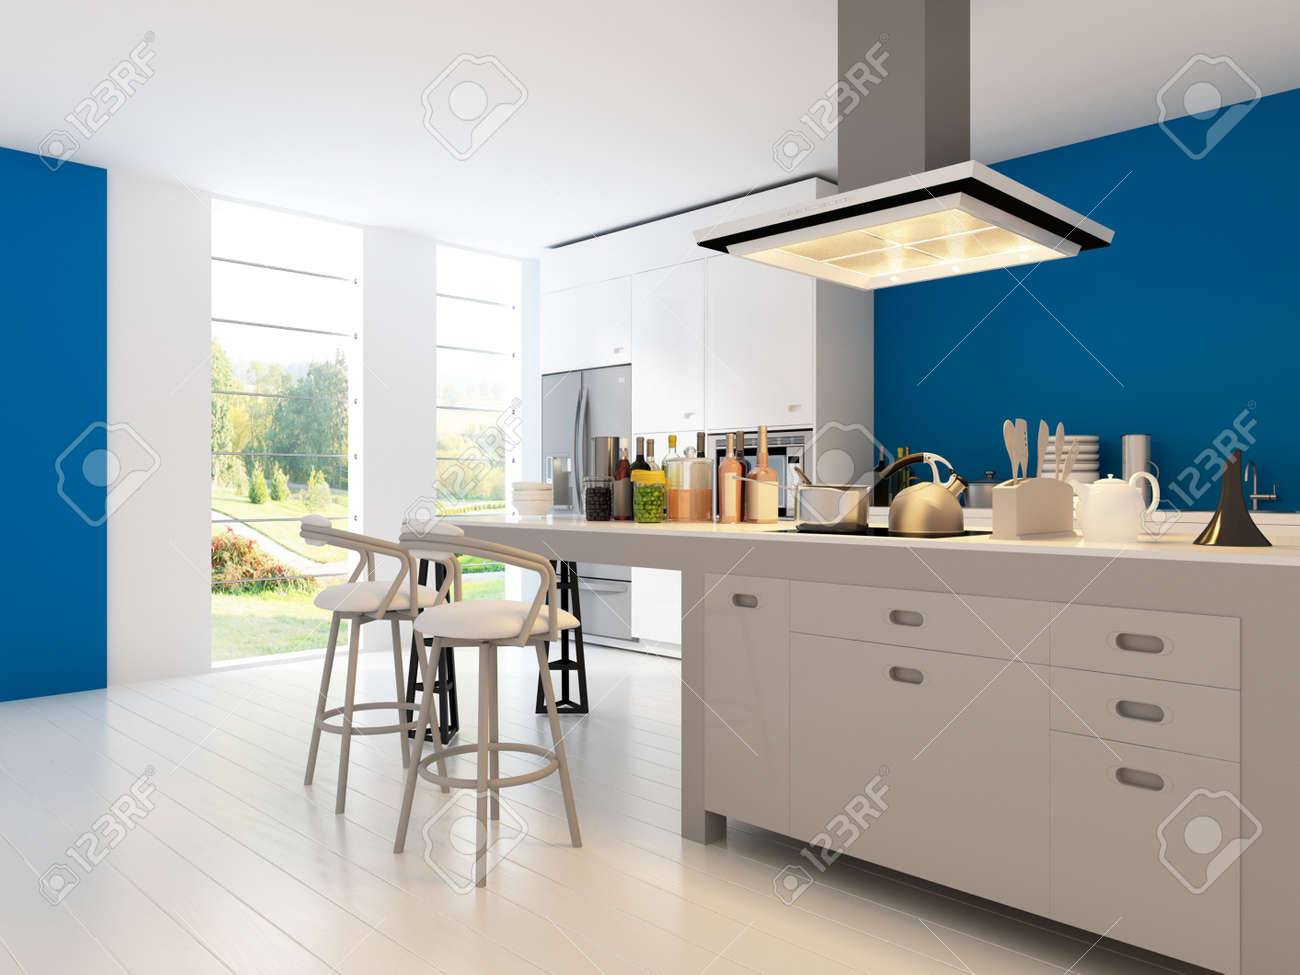 Modern Kitchen Interior kitchen stock photos. royalty free kitchen images and pictures